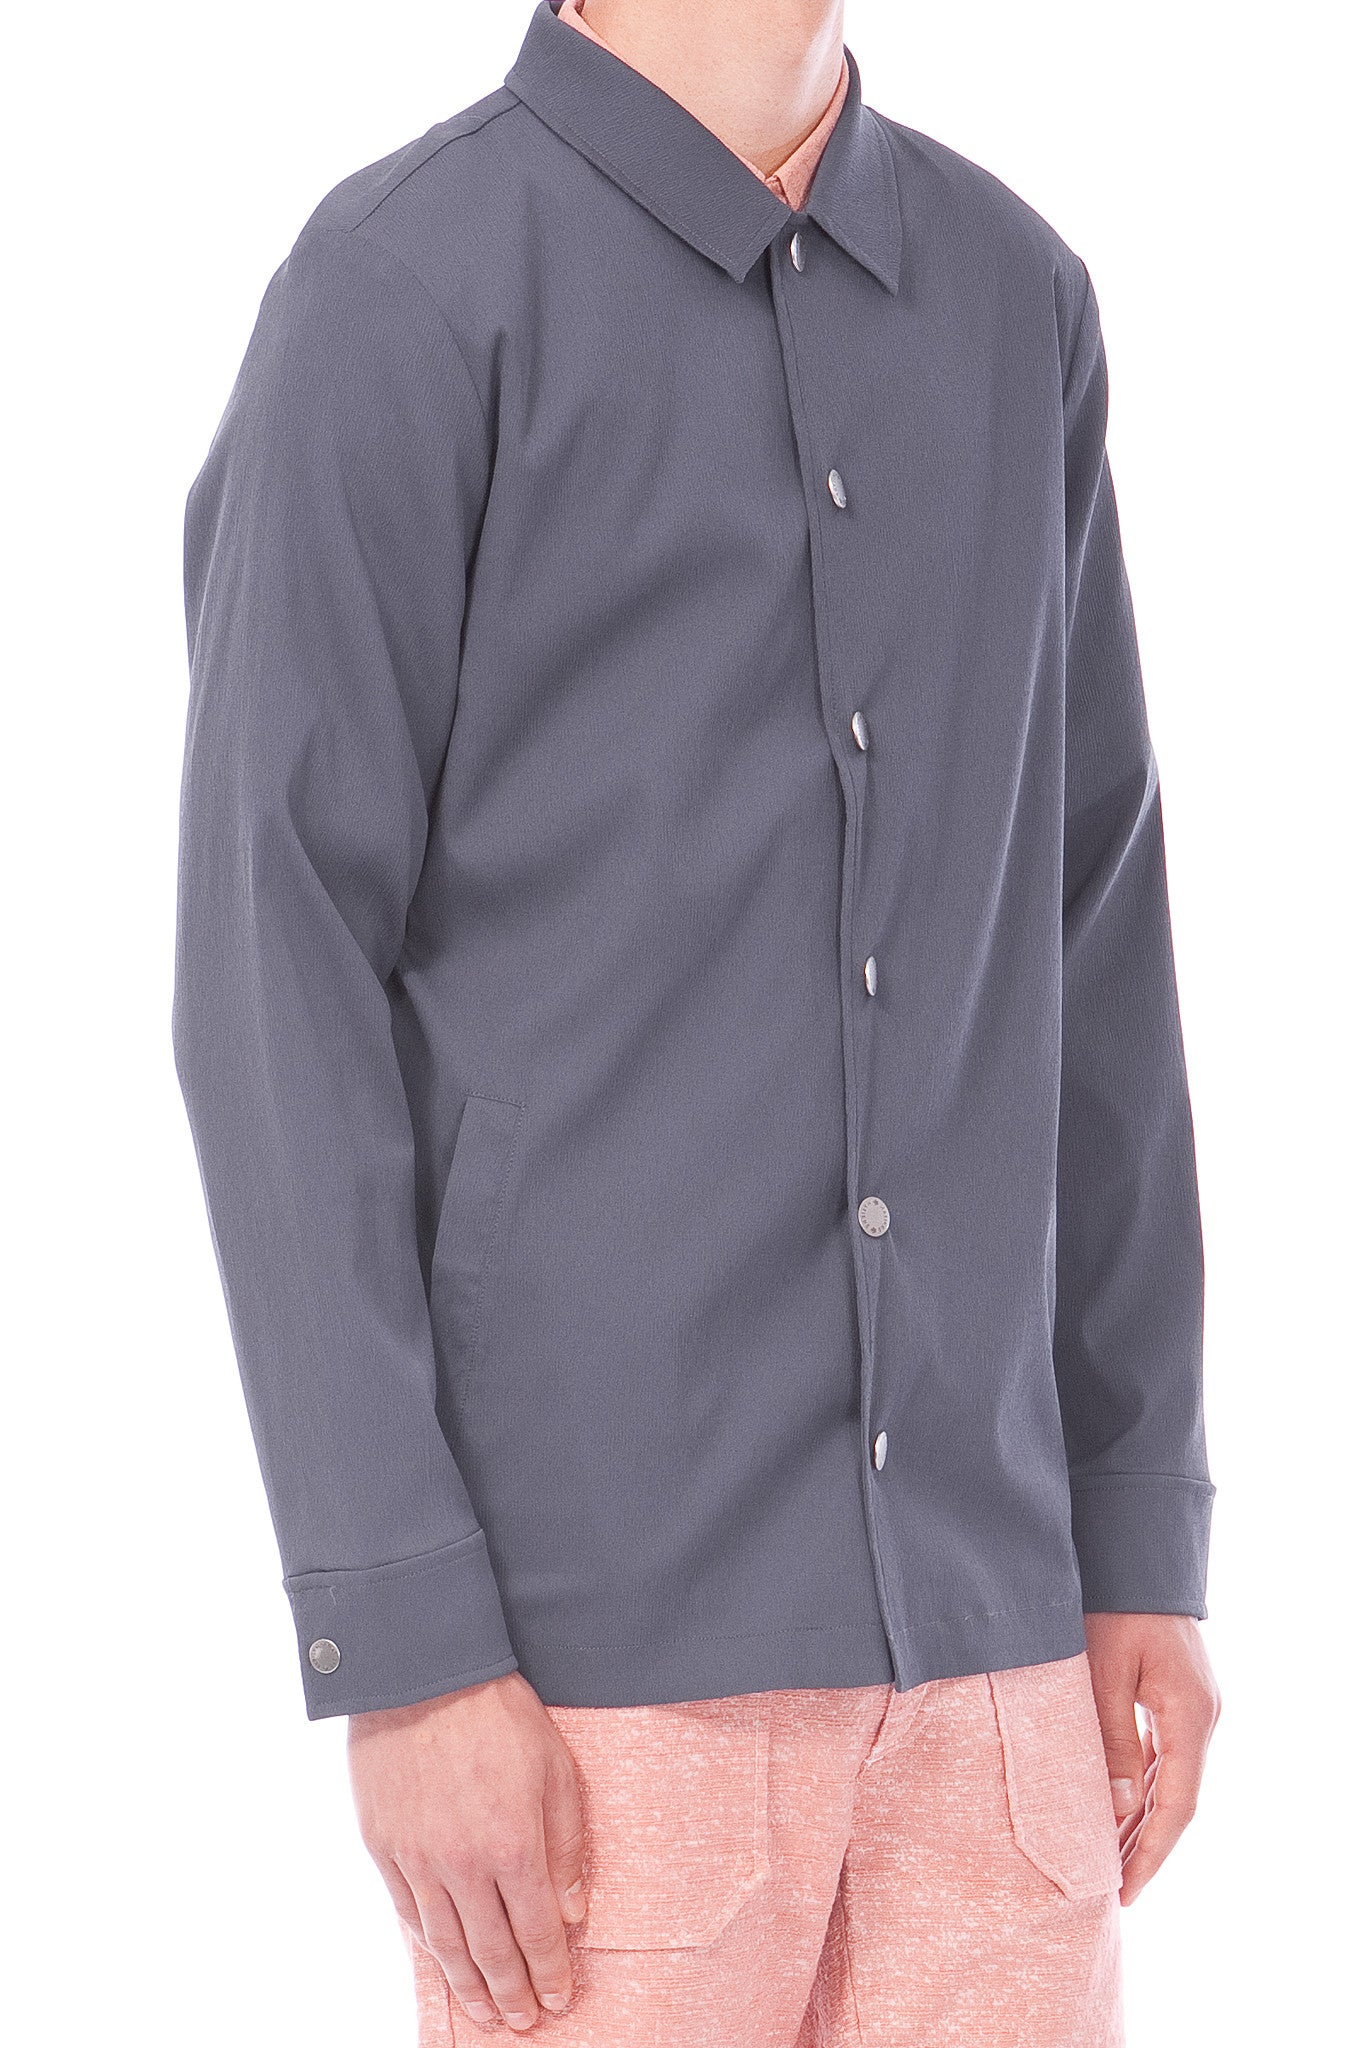 SHAFER - JACKET - OMBRE BLUE